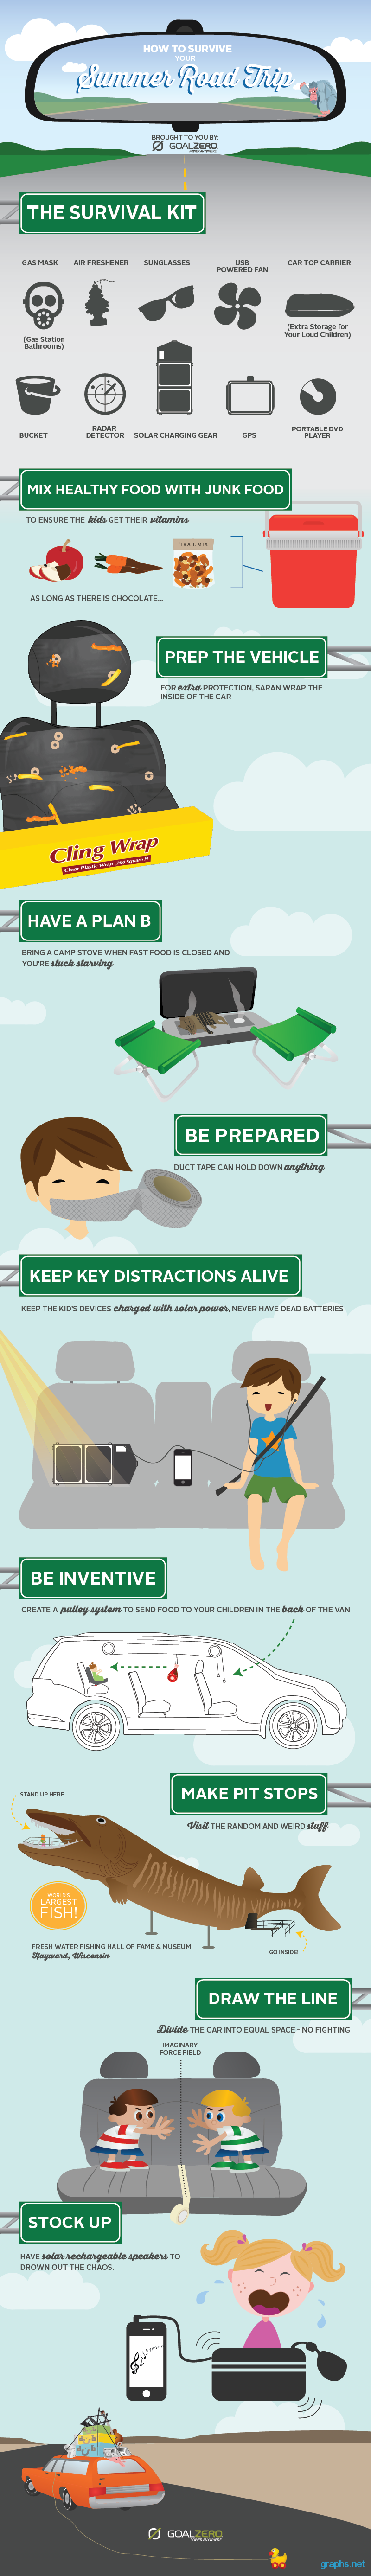 Survival Guide for Summer Road Trip #trip #guide #infographics